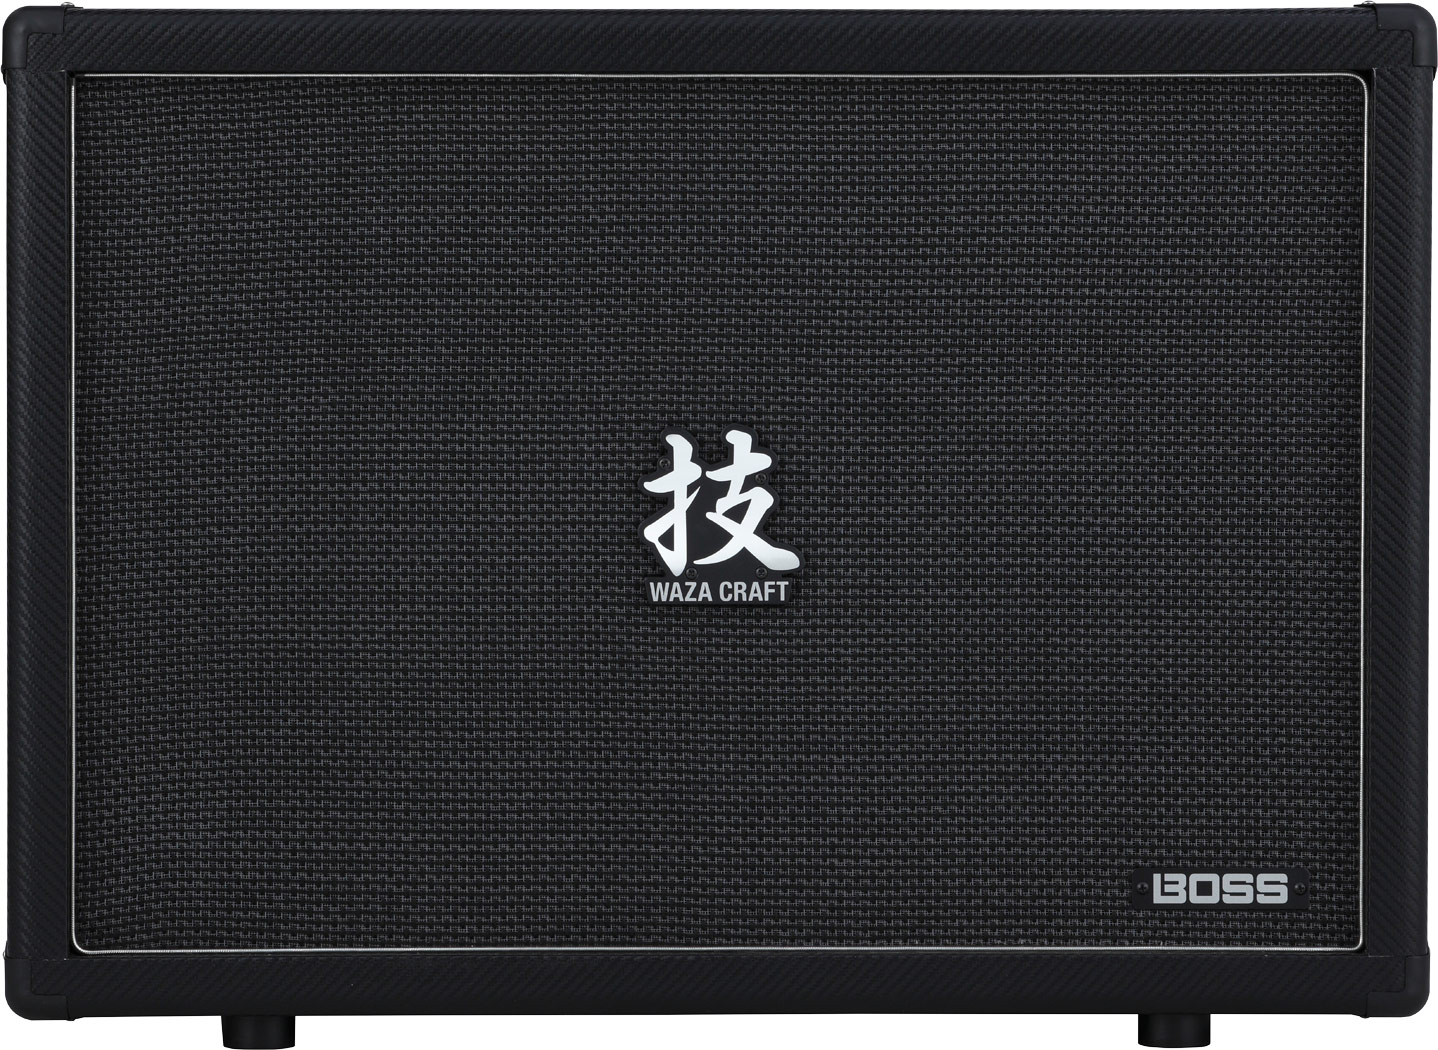 【160W】BOSS WAZA Amp Cabinet212 新品 スピーカーキャビネット[ボス][技クラフト,craft,ワザ][Guitar Amplifier][Speaker Cabinet]